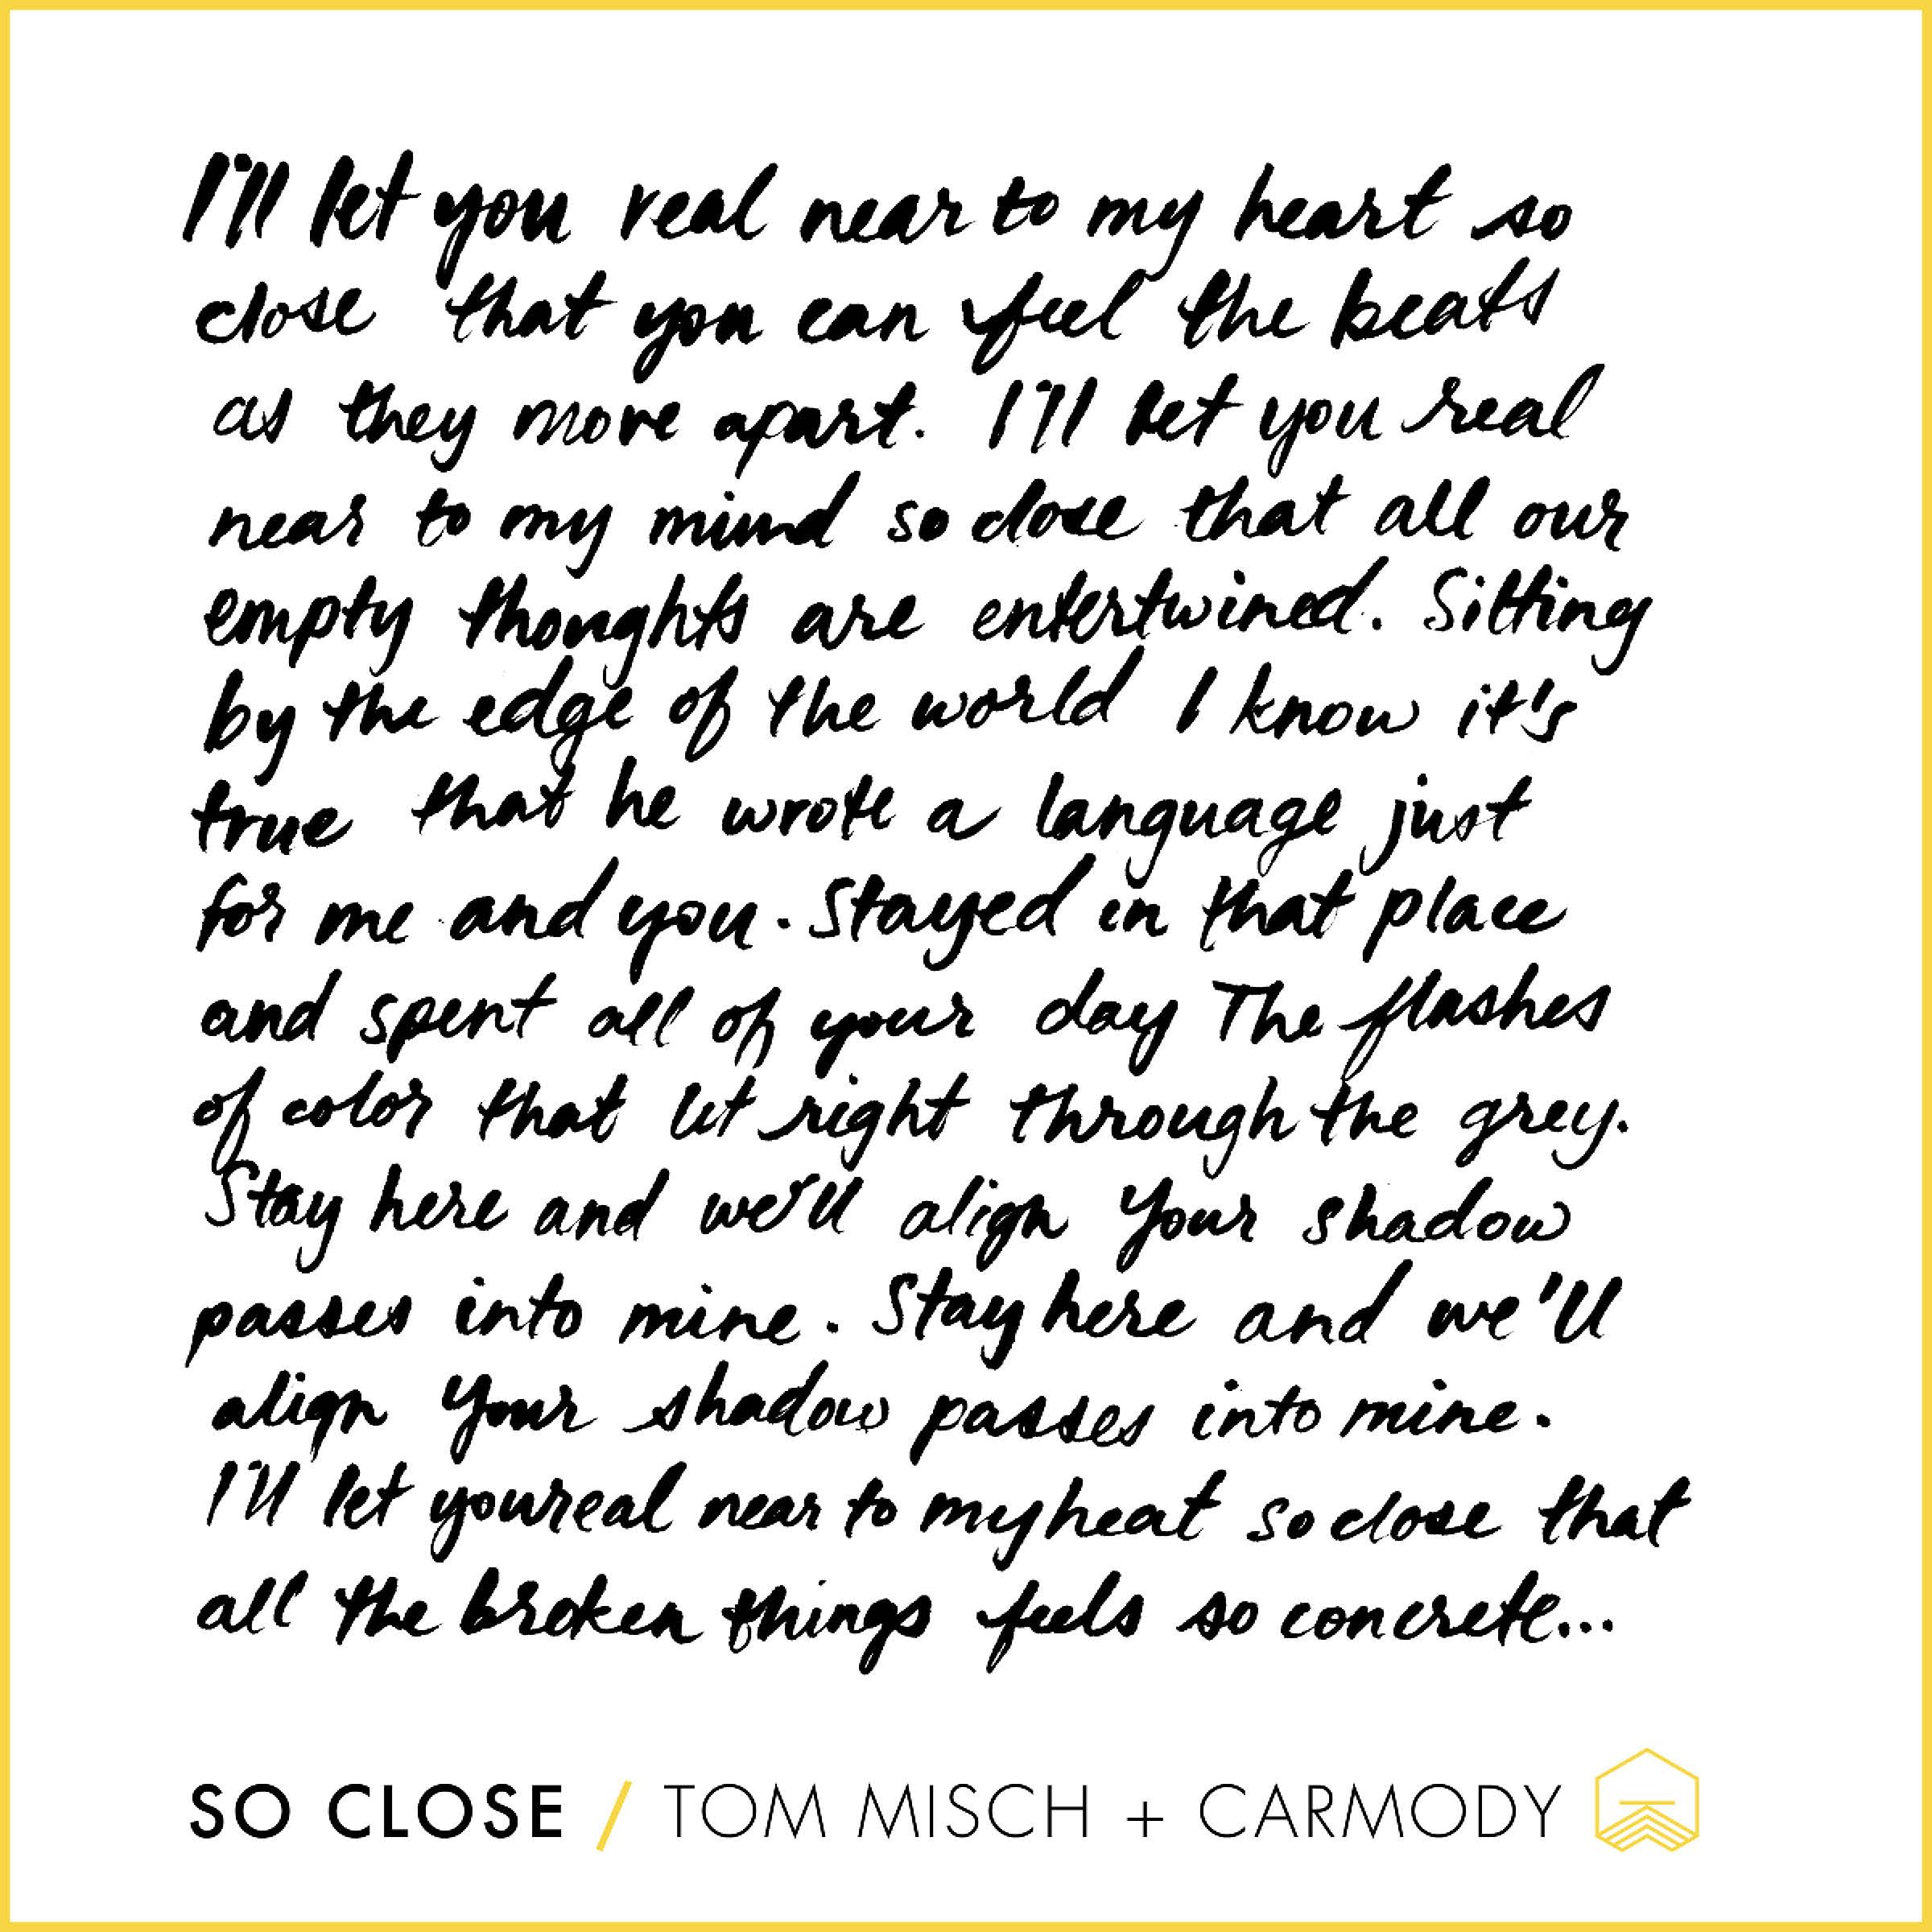 In Love with these Lyrics: So Close by Tom Misch + Carmody